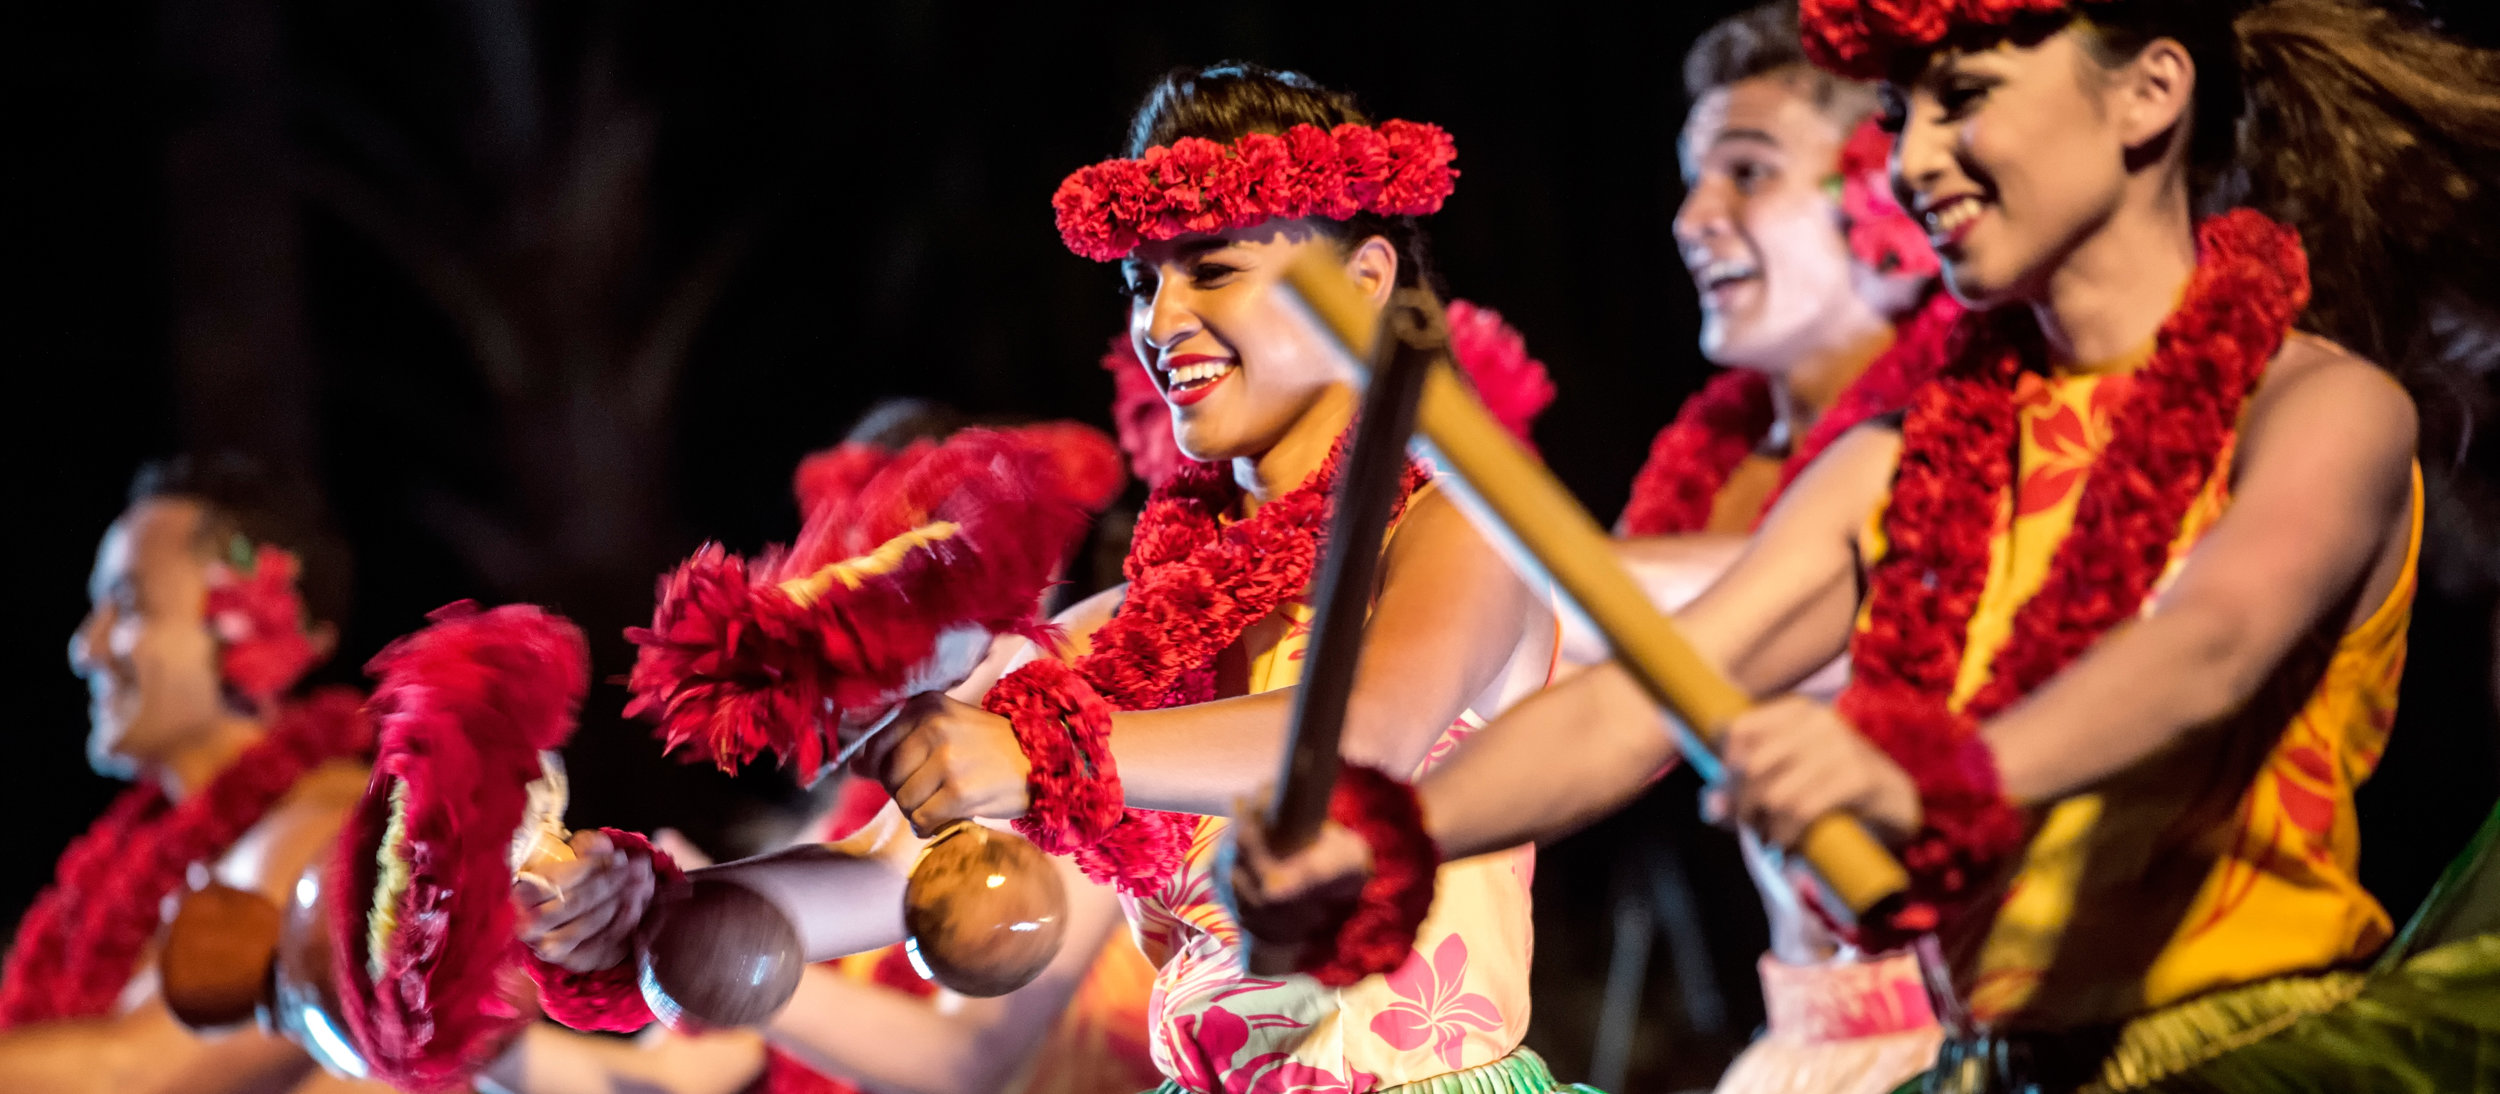 aulani-activities-ka-waa-luau-close-up-dancers-in-red-16x7.jpg